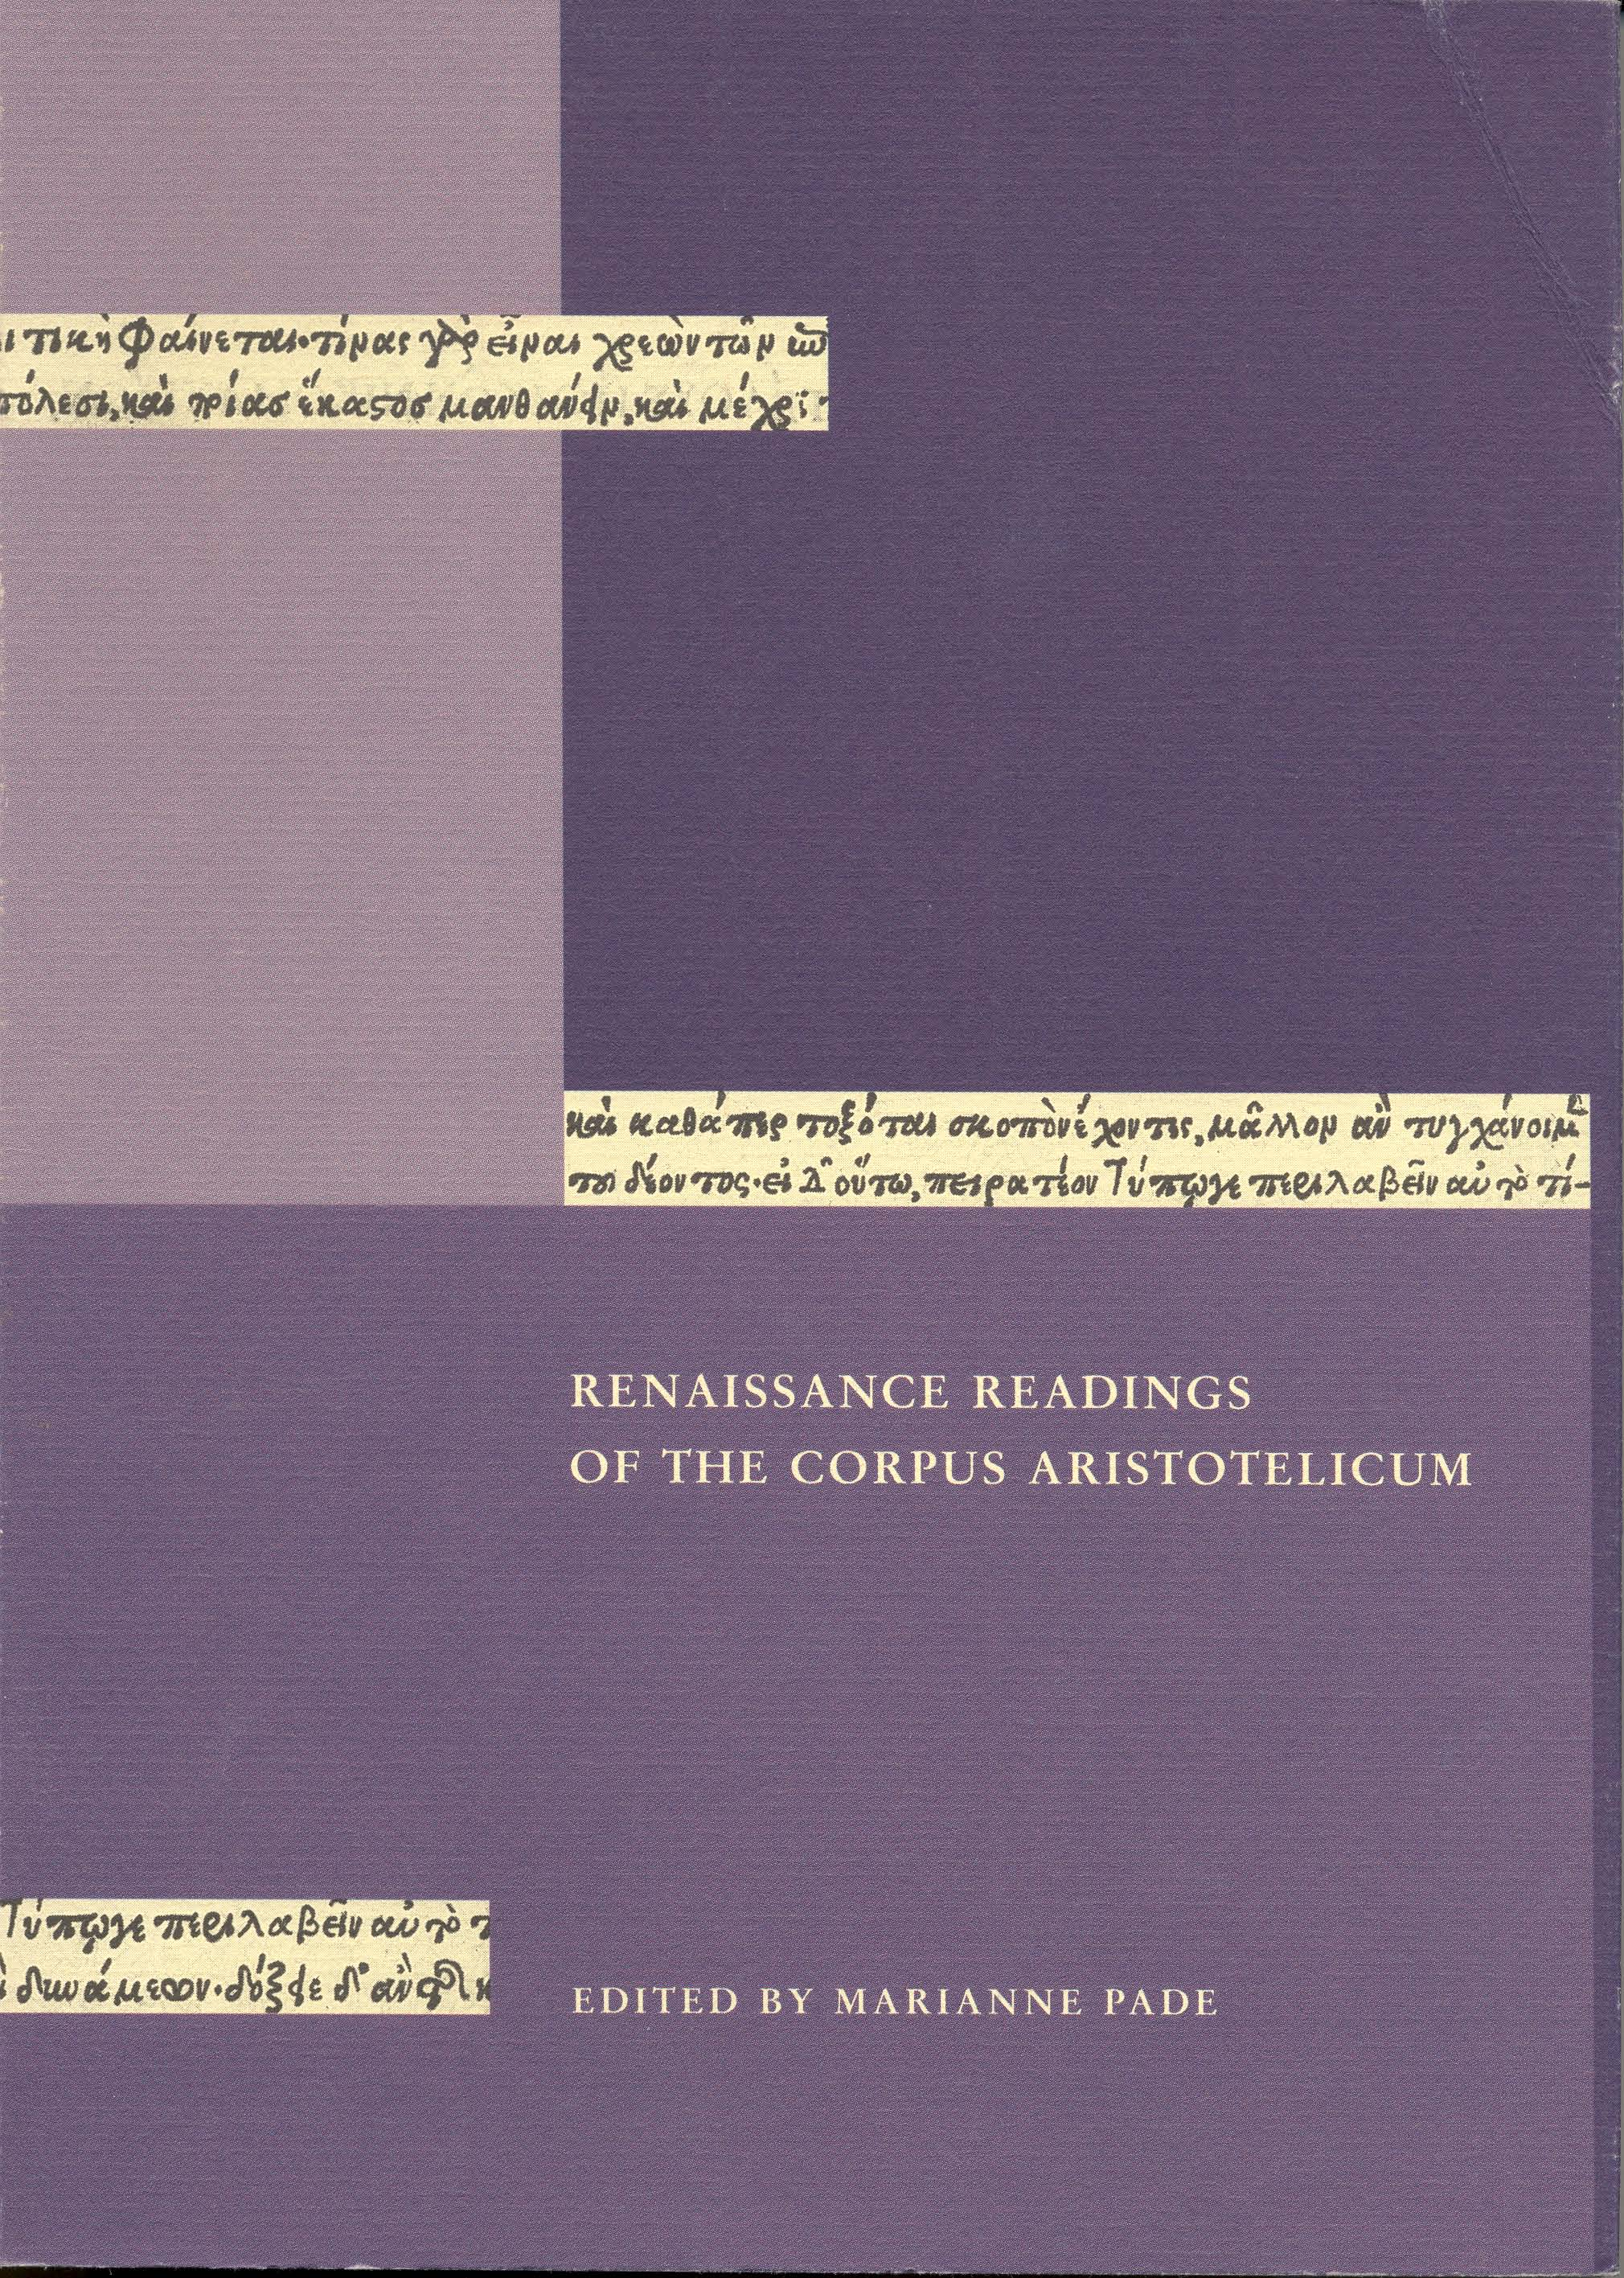 Renaissance Readings of the Corpus Aristotelicum: Papers from the Conference held in Copenhagen 23-25 April 1998